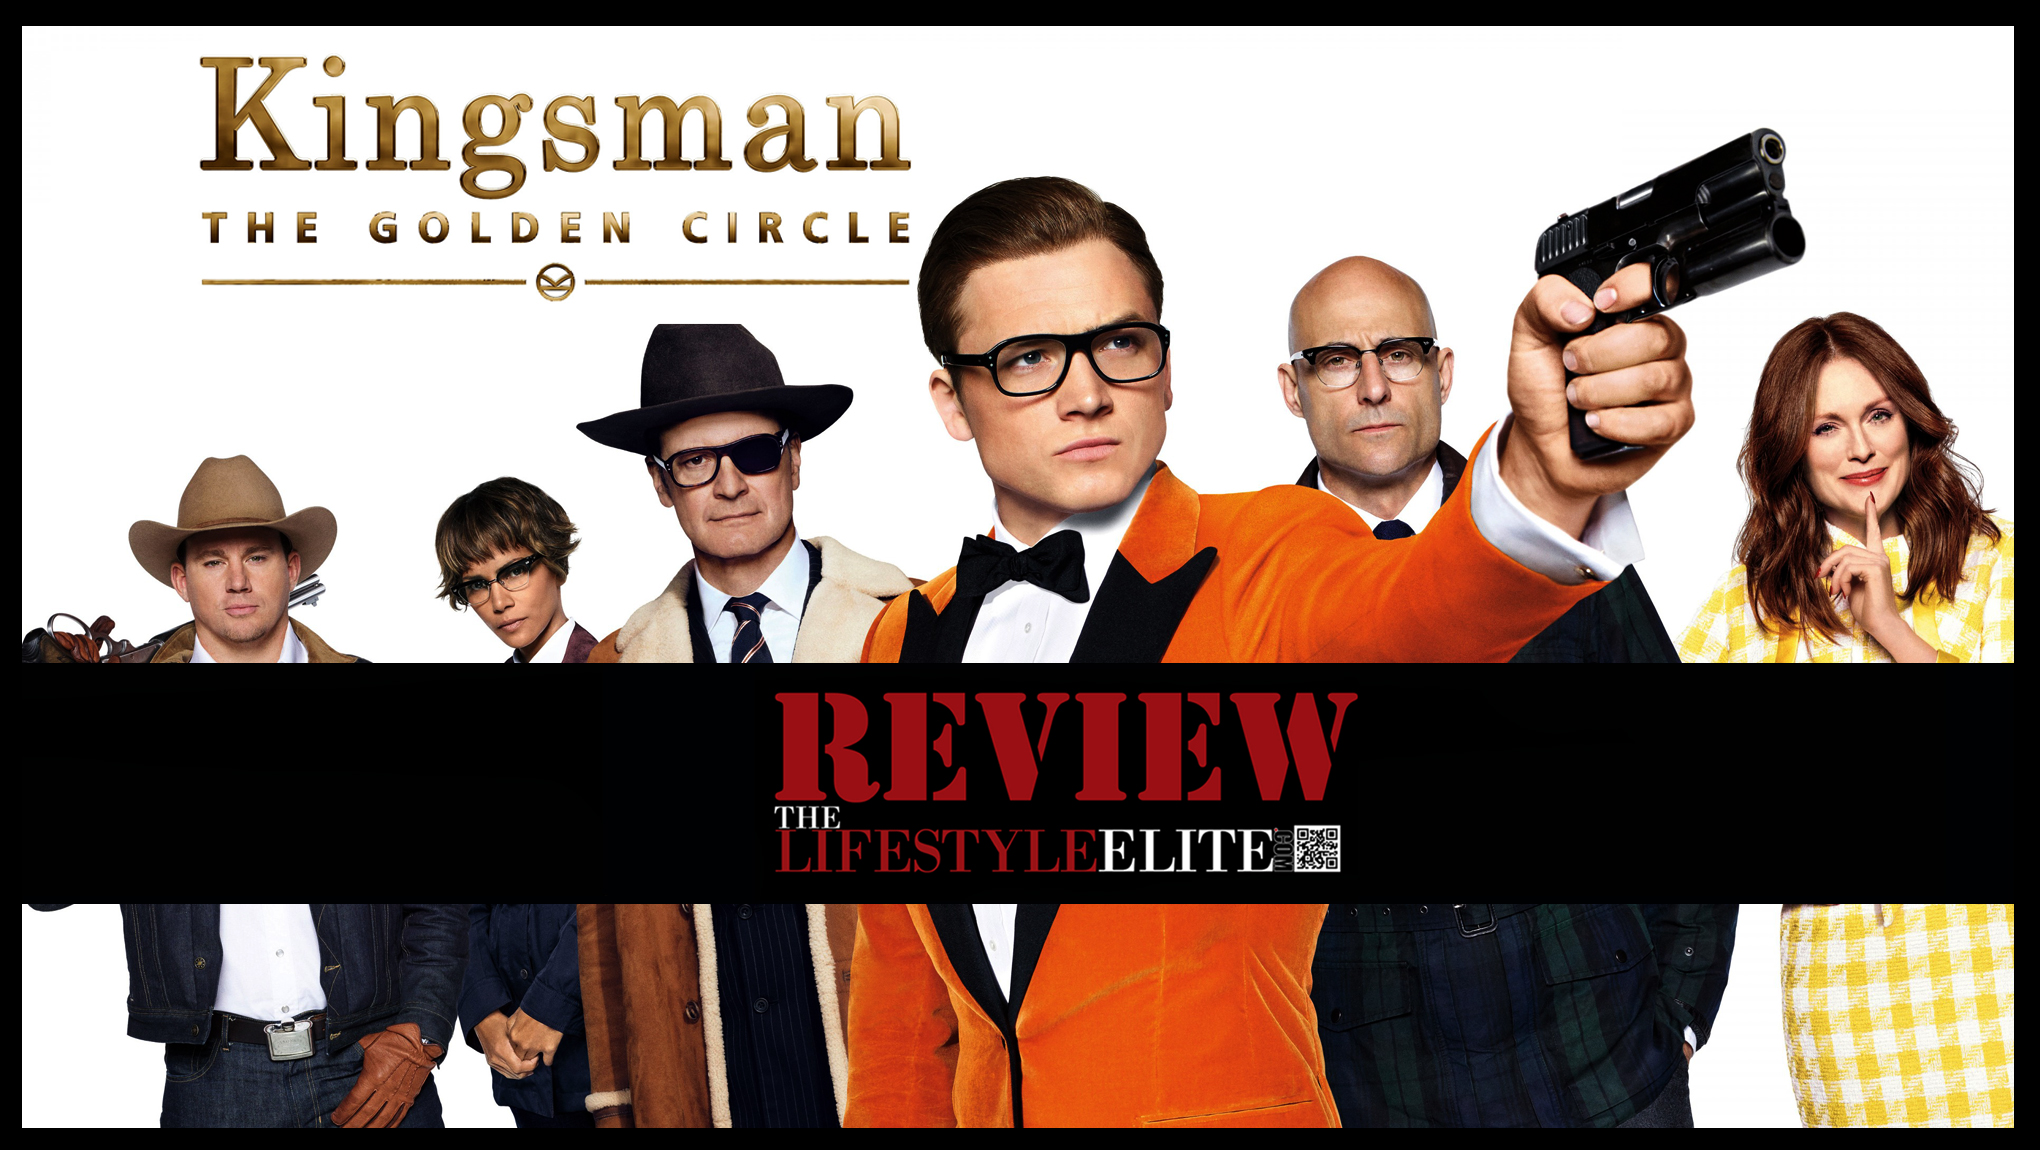 Kingsman: The Golden Circle,cheyan antwaune gray, cheyan gray, antwaune gray, thelifestyleelite,elite lifestyle, thelifestyleelitedotcom, thelifestyleelite.com,tlselite.com,TheLifeStyleElite.com,cheyan antwaune gray,fashion,models of thelifestyleelite.com, the life style elite,the lifestyle elite,elite lifestyle,lifestyleelite.com,cheyan gray,TLSElite,TLSElite.com,TLSEliteGaming,TLSElite Gaming